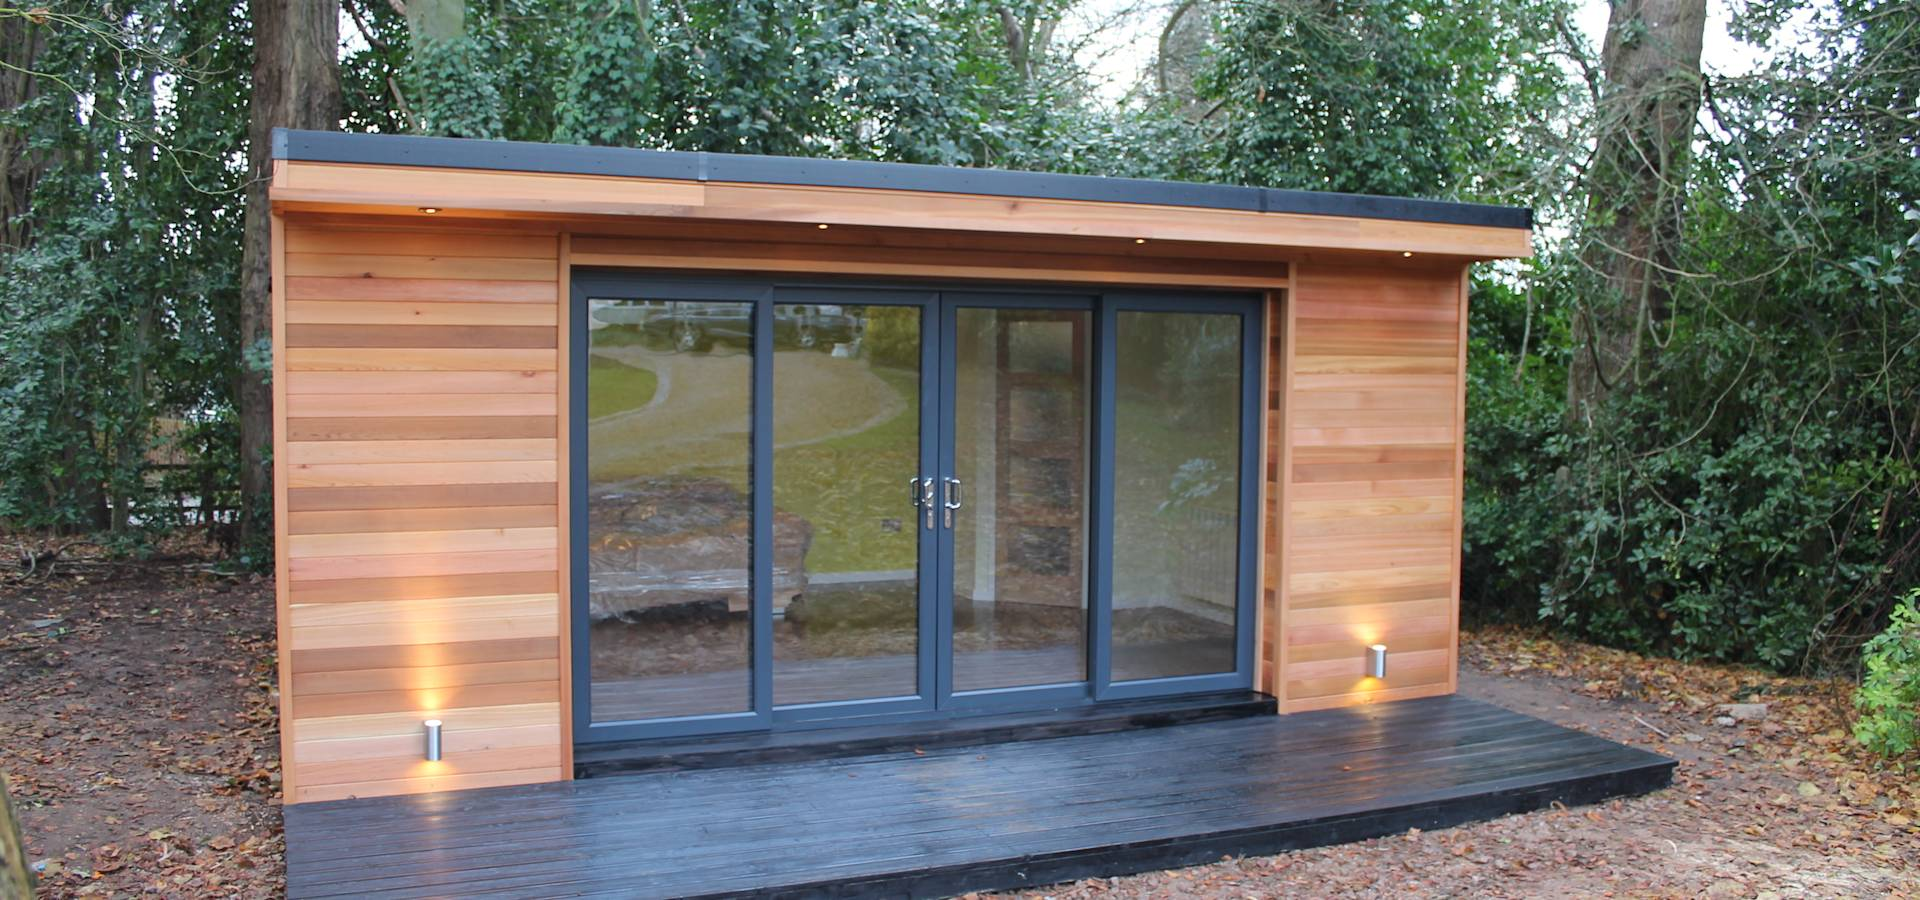 39 the crusoe classic 39 6m x 4m garden room home office for Garden office ideas uk